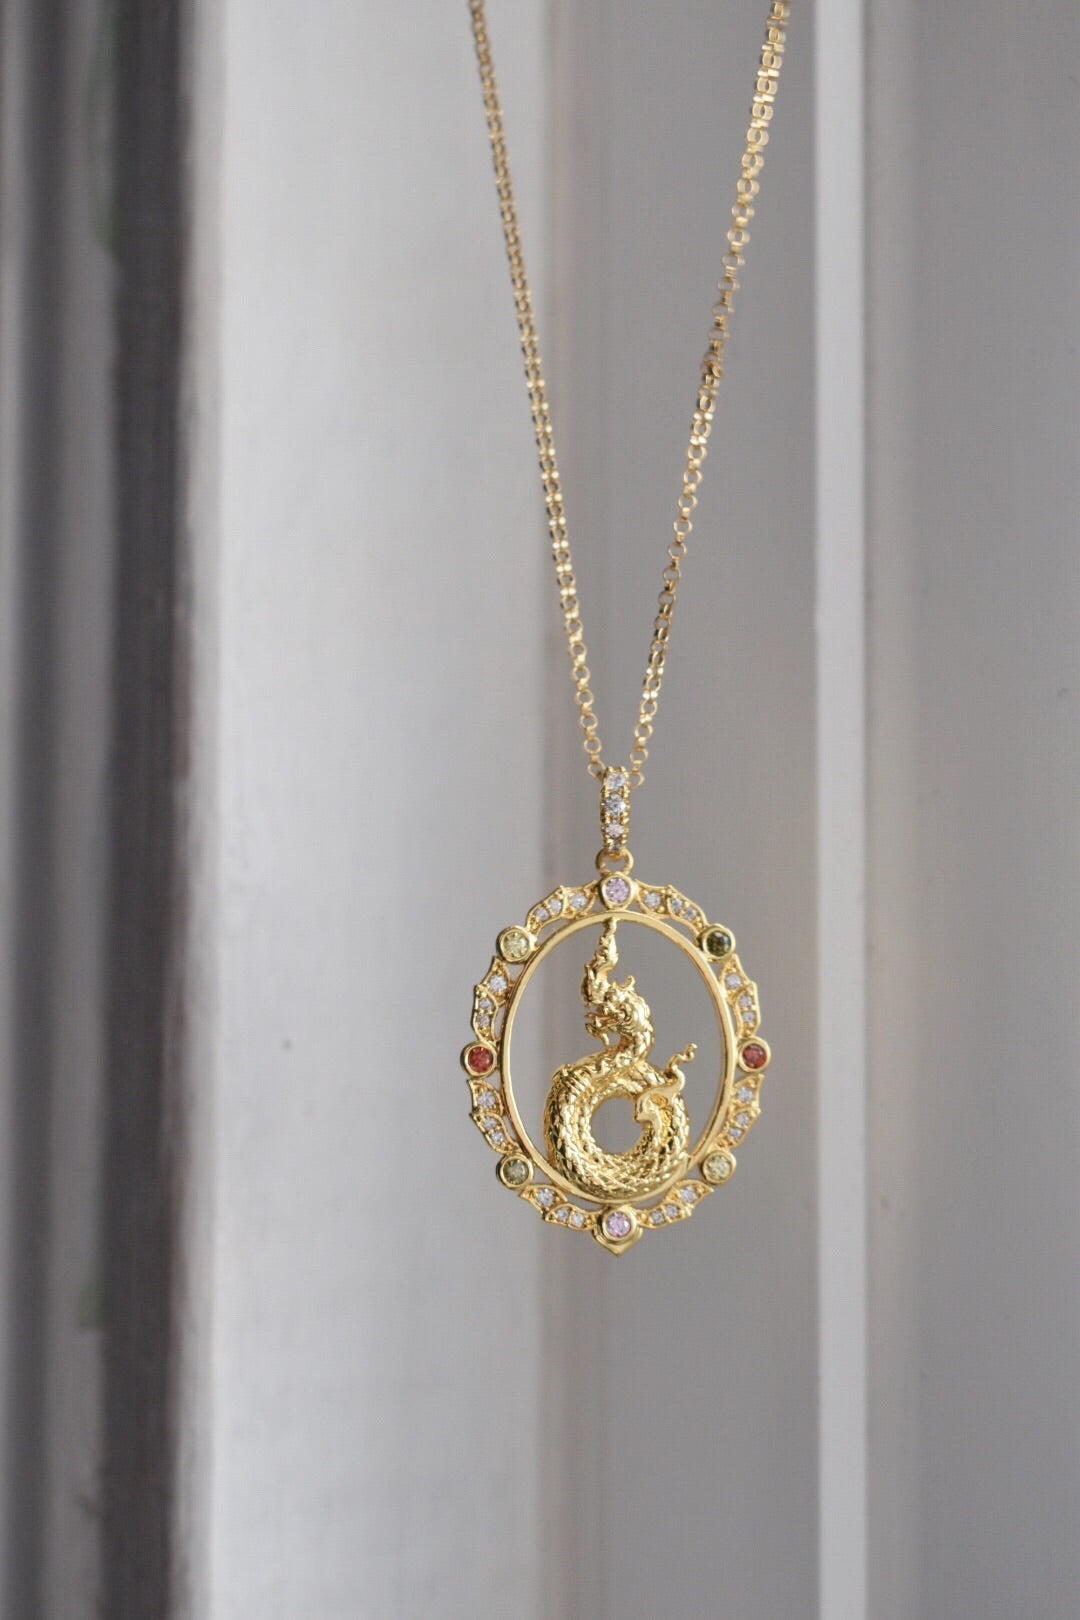 The 14k Gold Filled Kaia Dragon Pendant